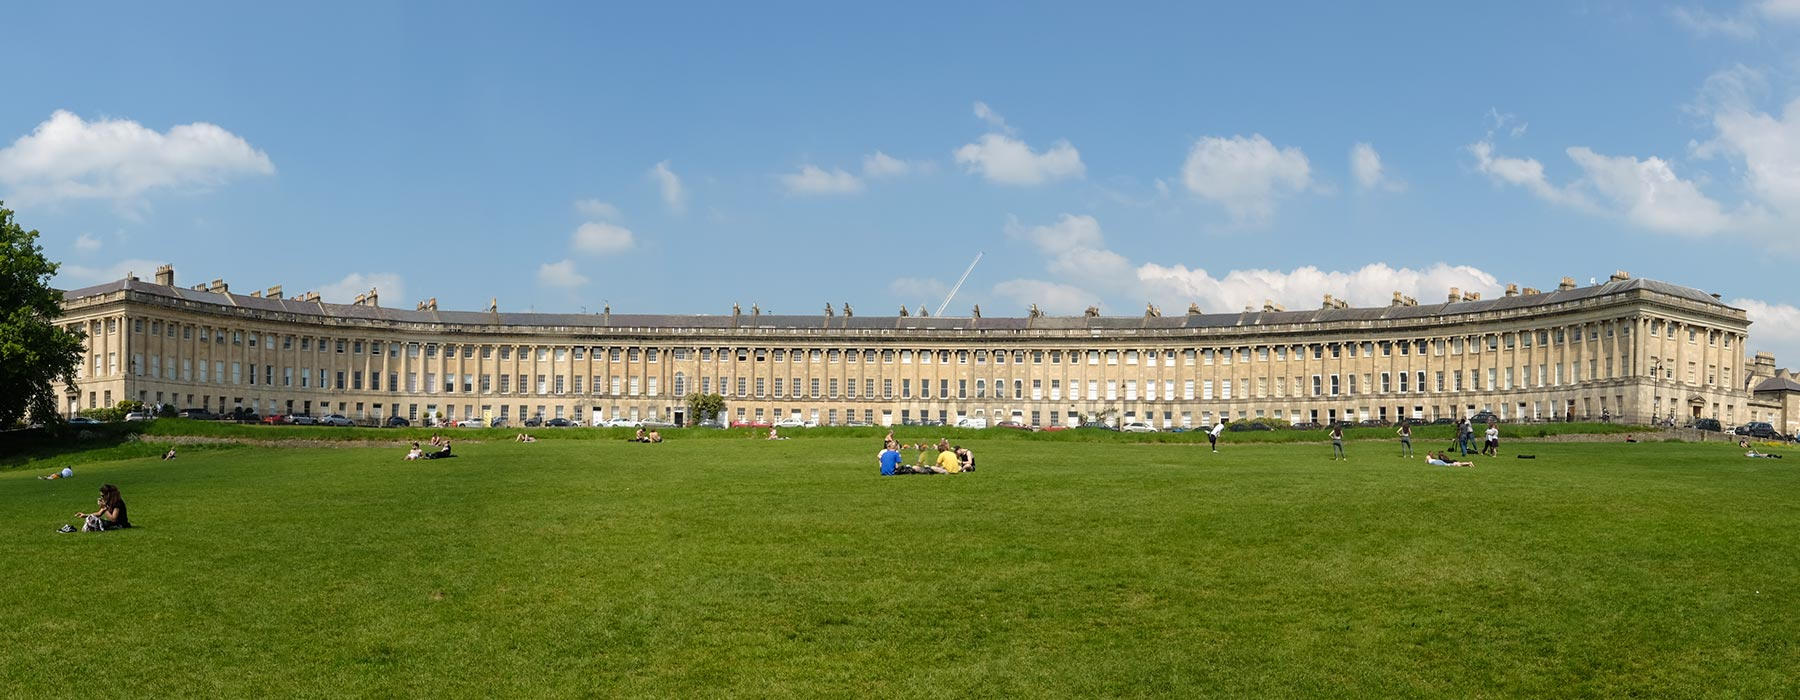 Blick auf Royal Crescent in Bath, Somerset